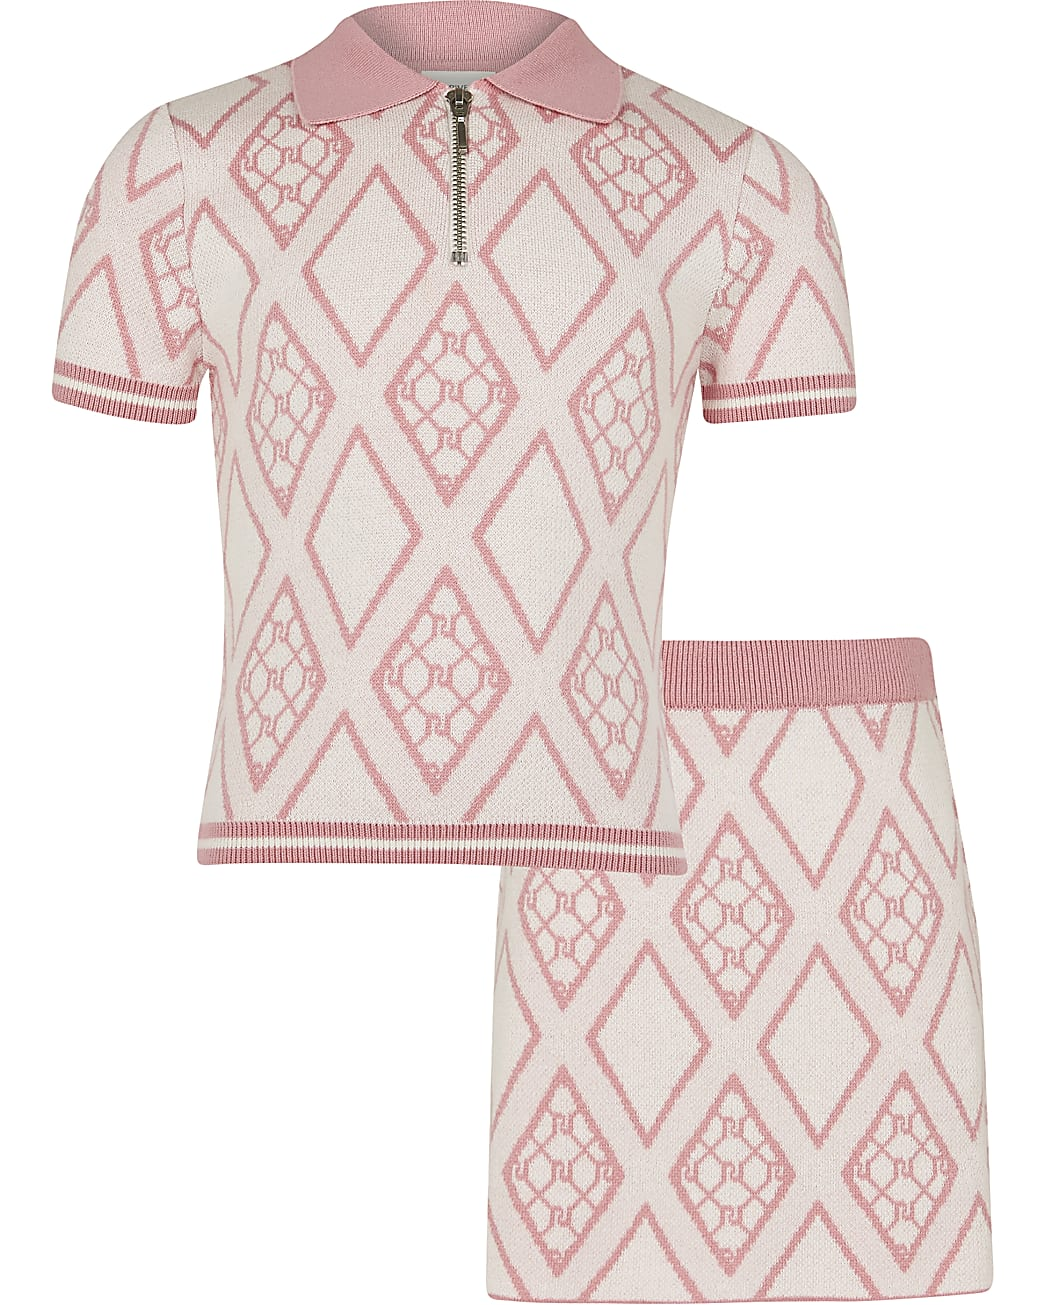 Girls pink RI polo top and skirt outfit